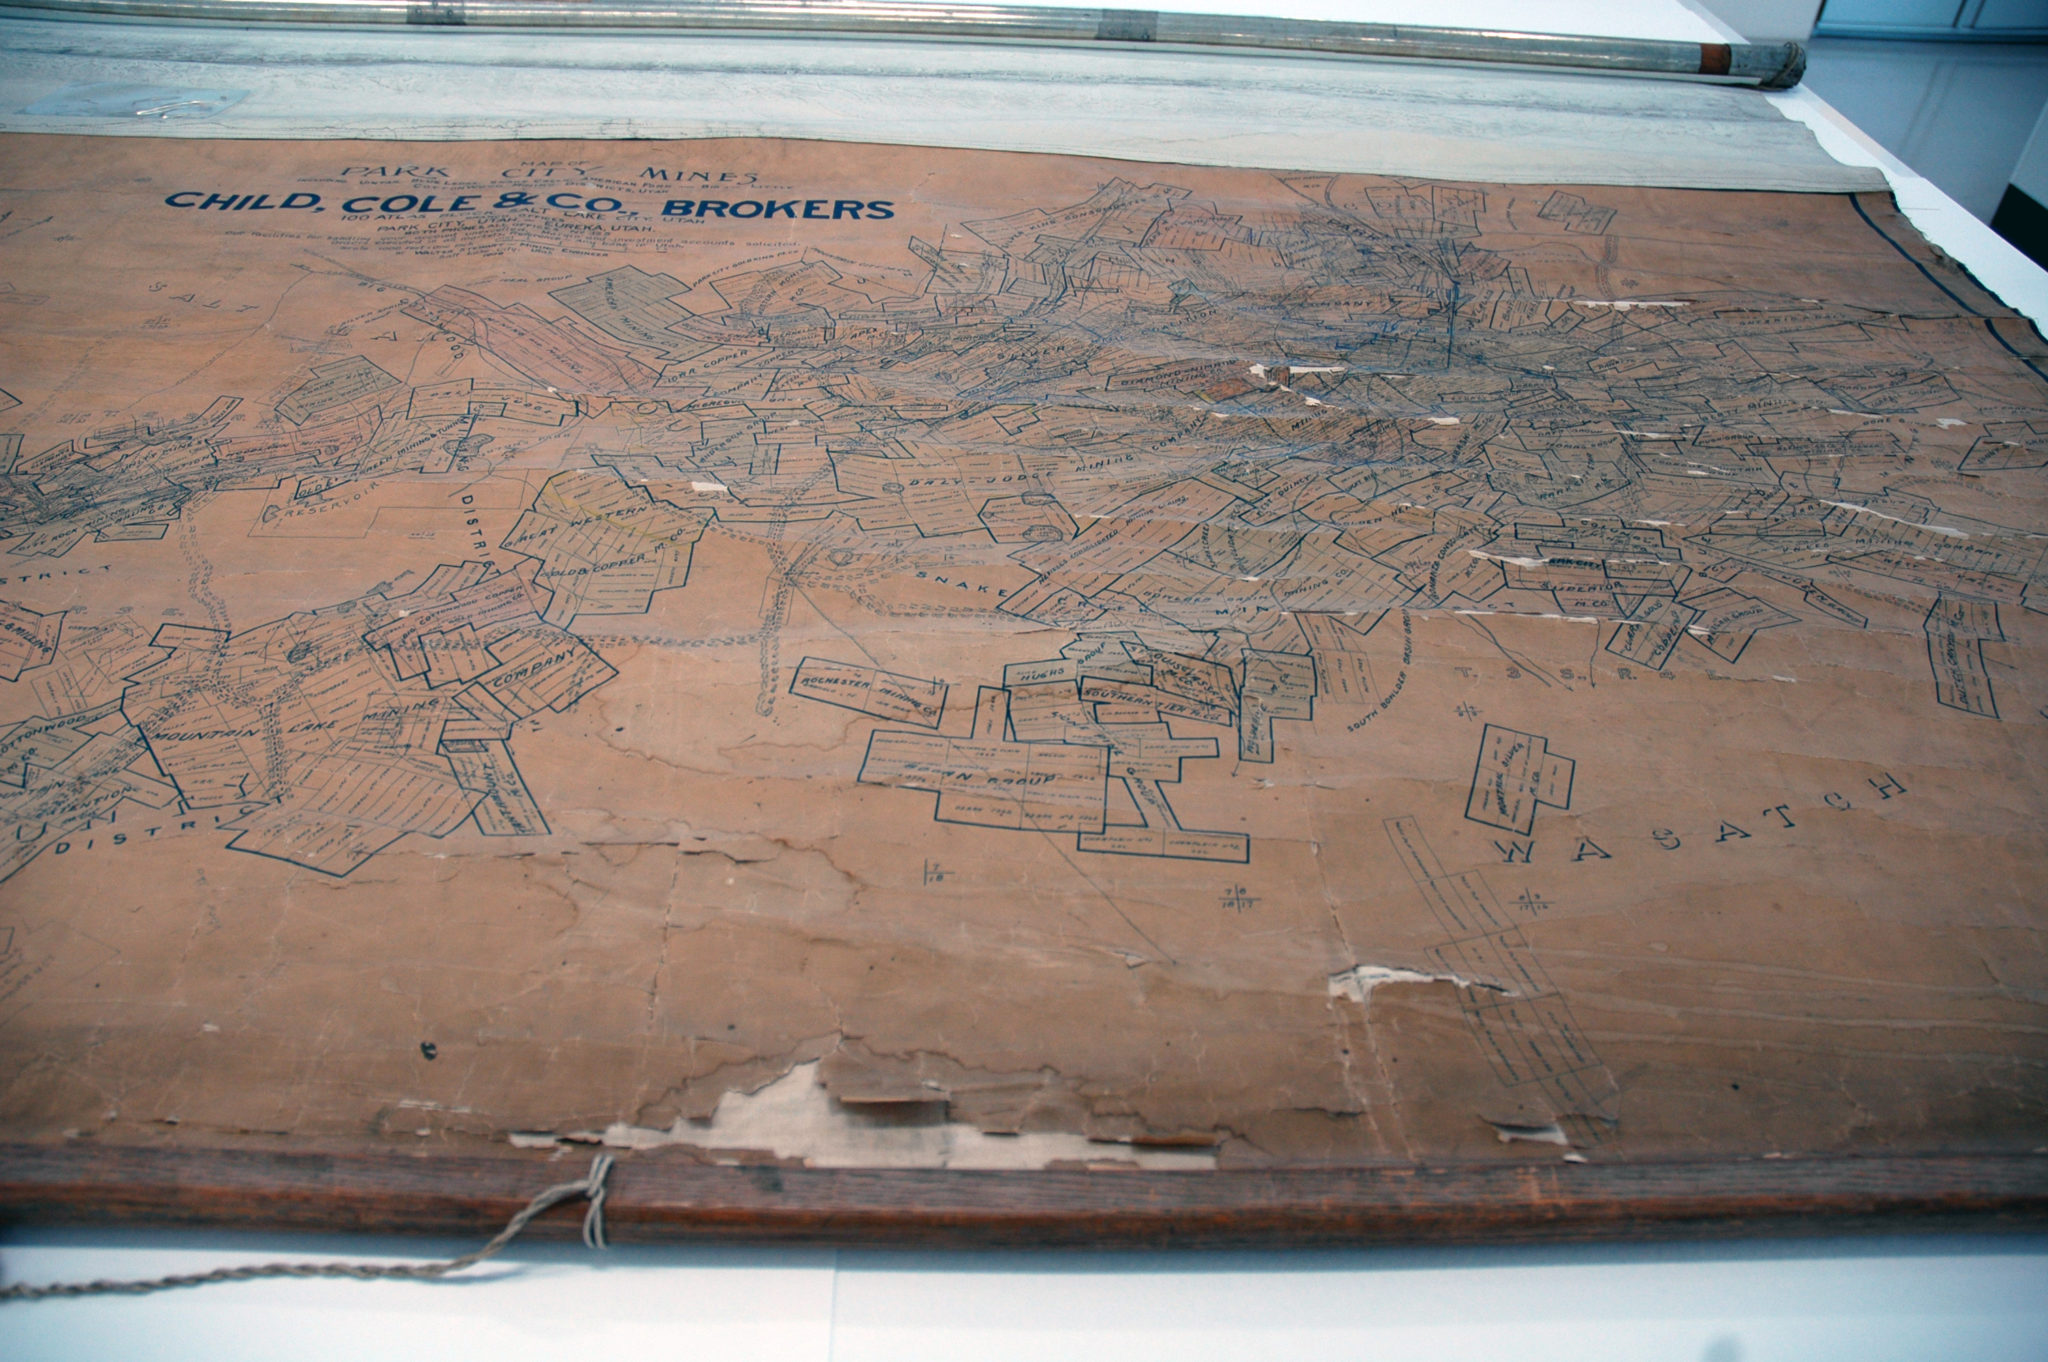 Large areas of loss, with lifting paper fragments scattered throughout the map.